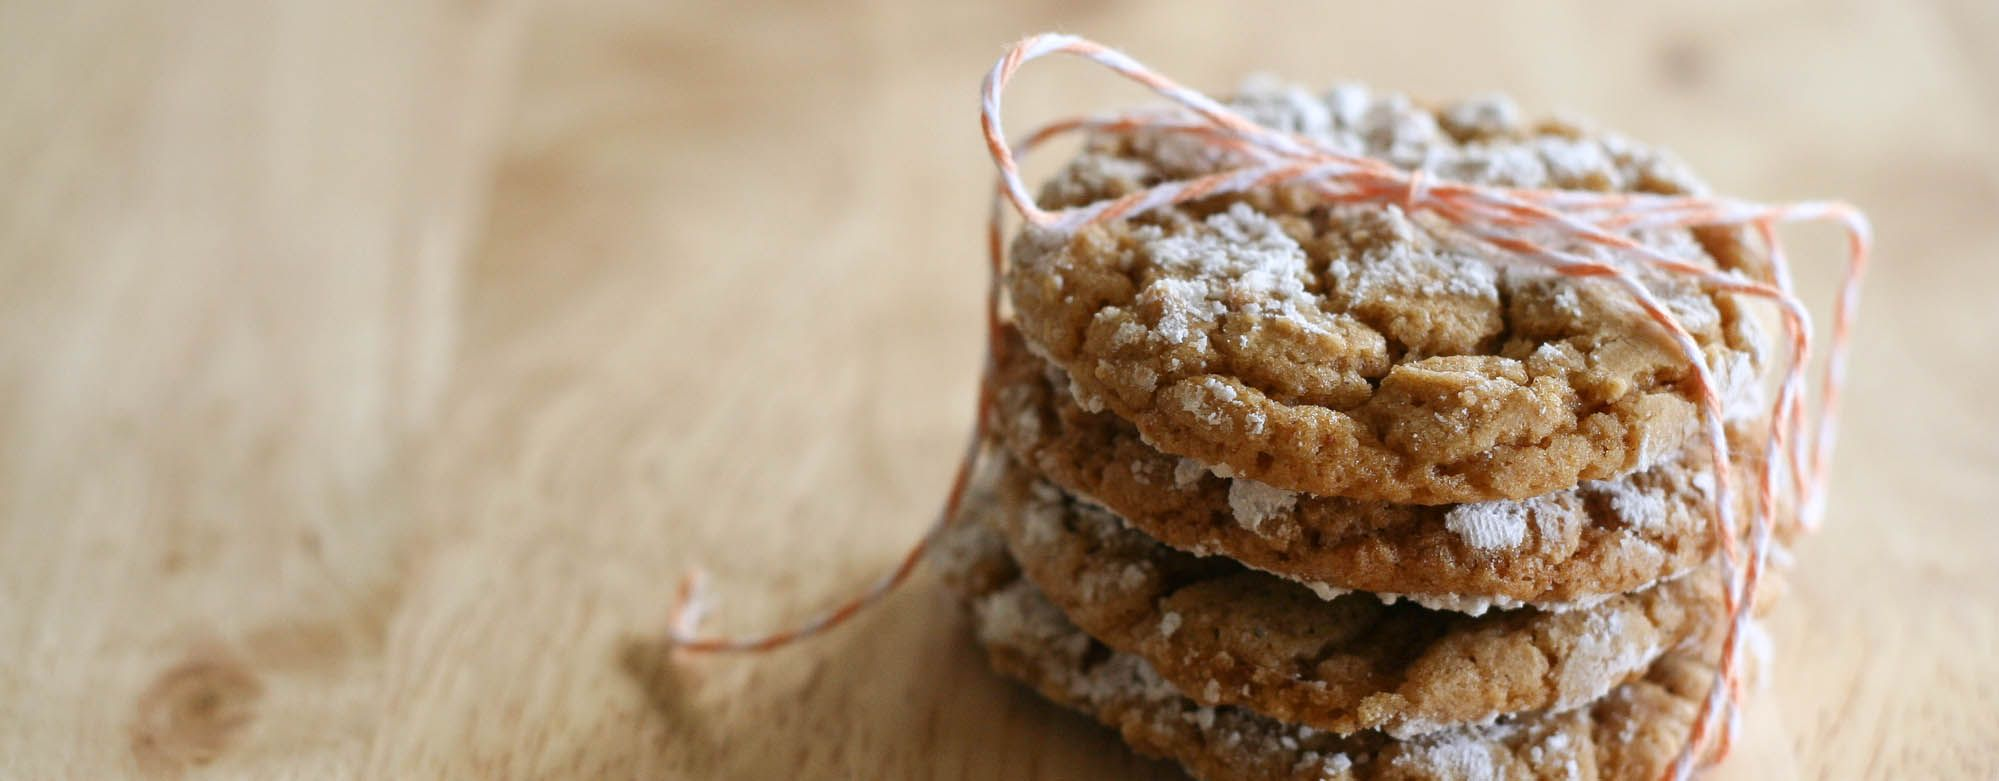 recipe: molasses crinkles recipe butter [5]